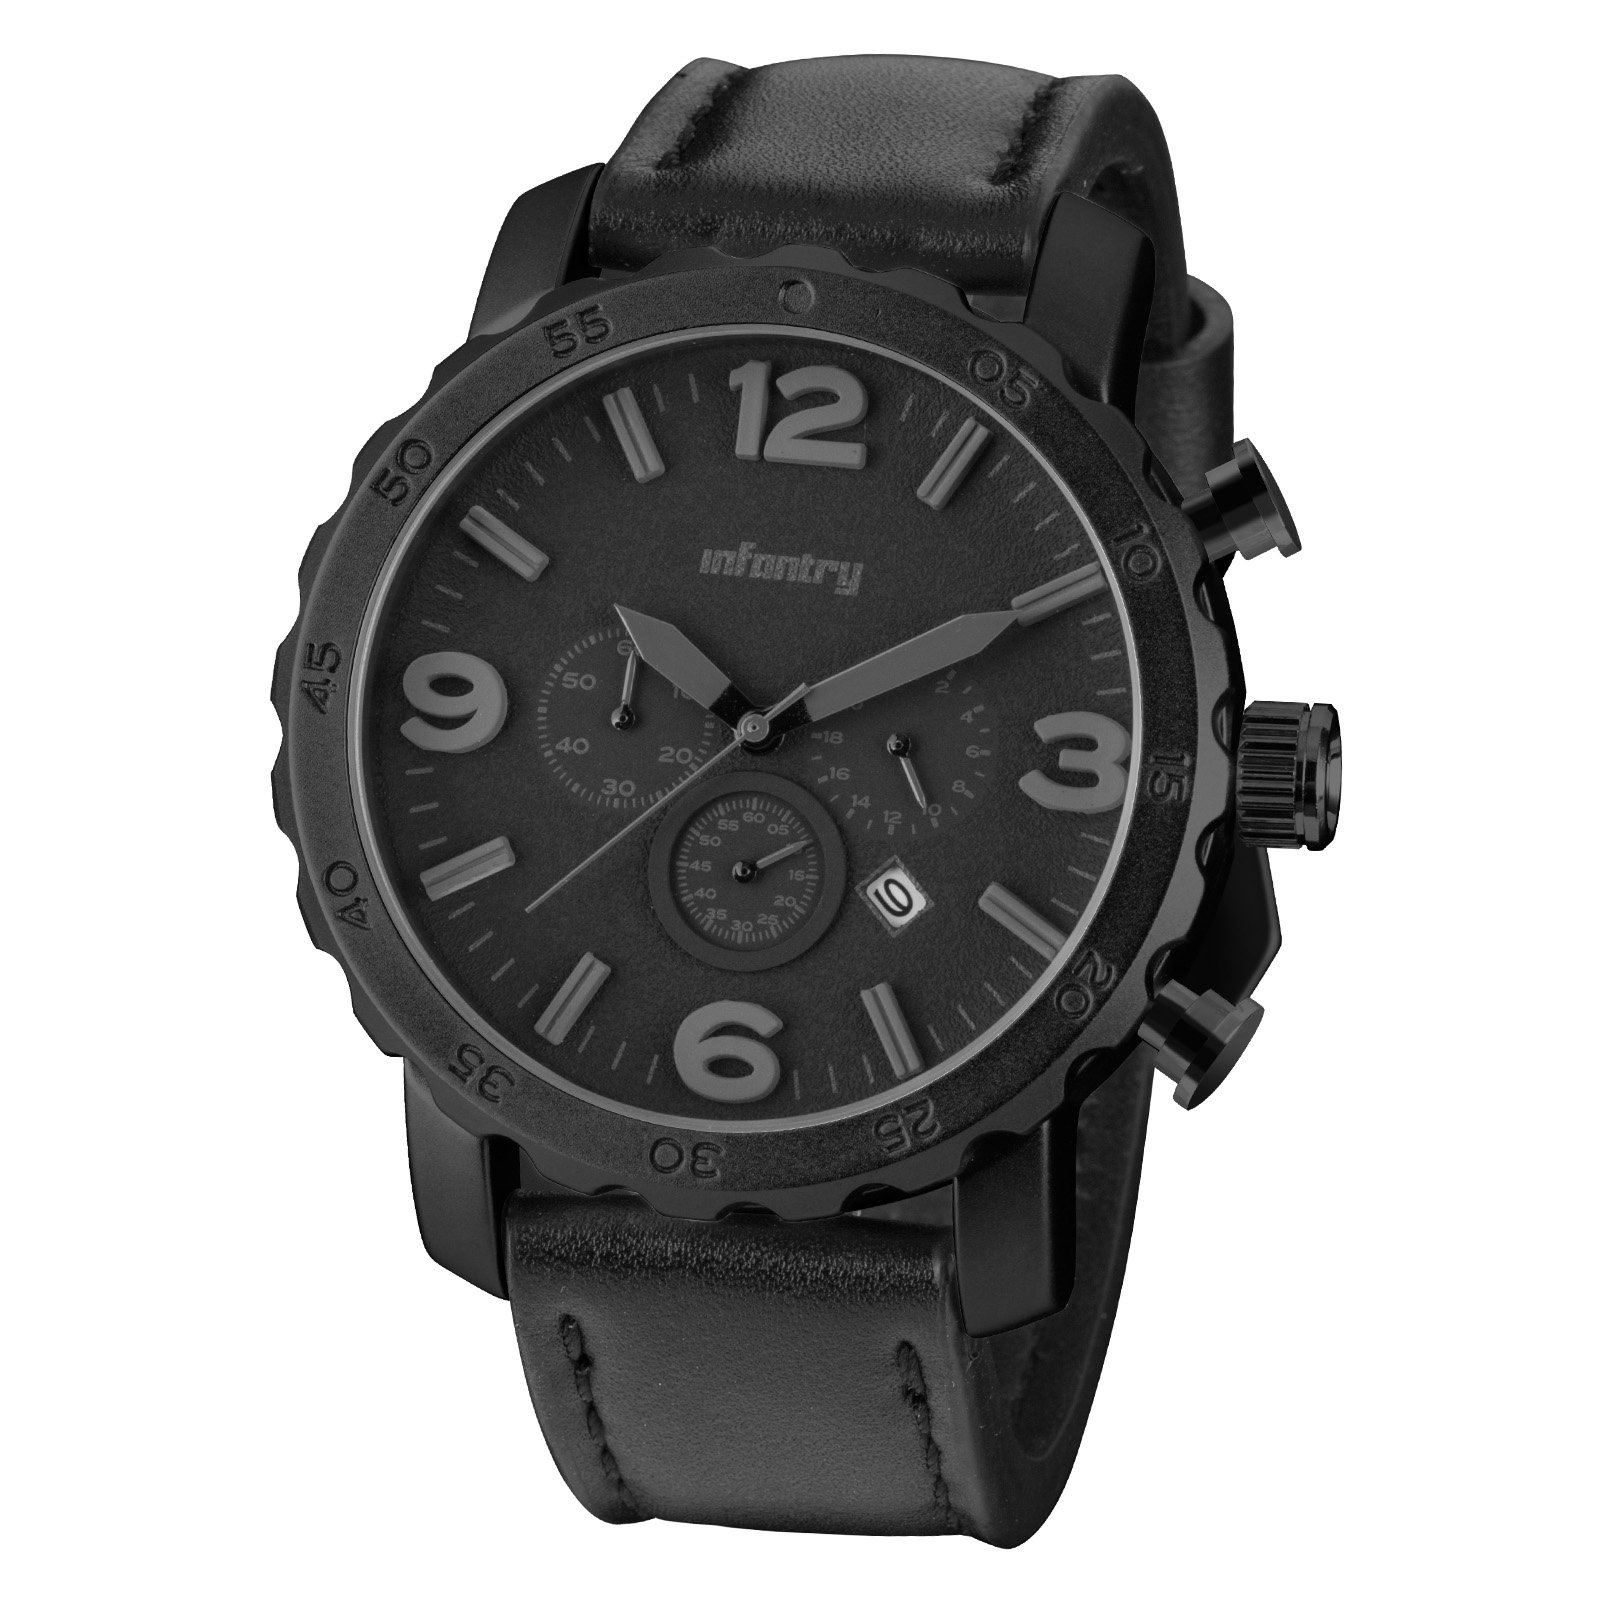 INFANTRY Mens GENUINE LEATHER Chronograph Military Analog Quartz Sport Watch Big Face All Black by Infantry